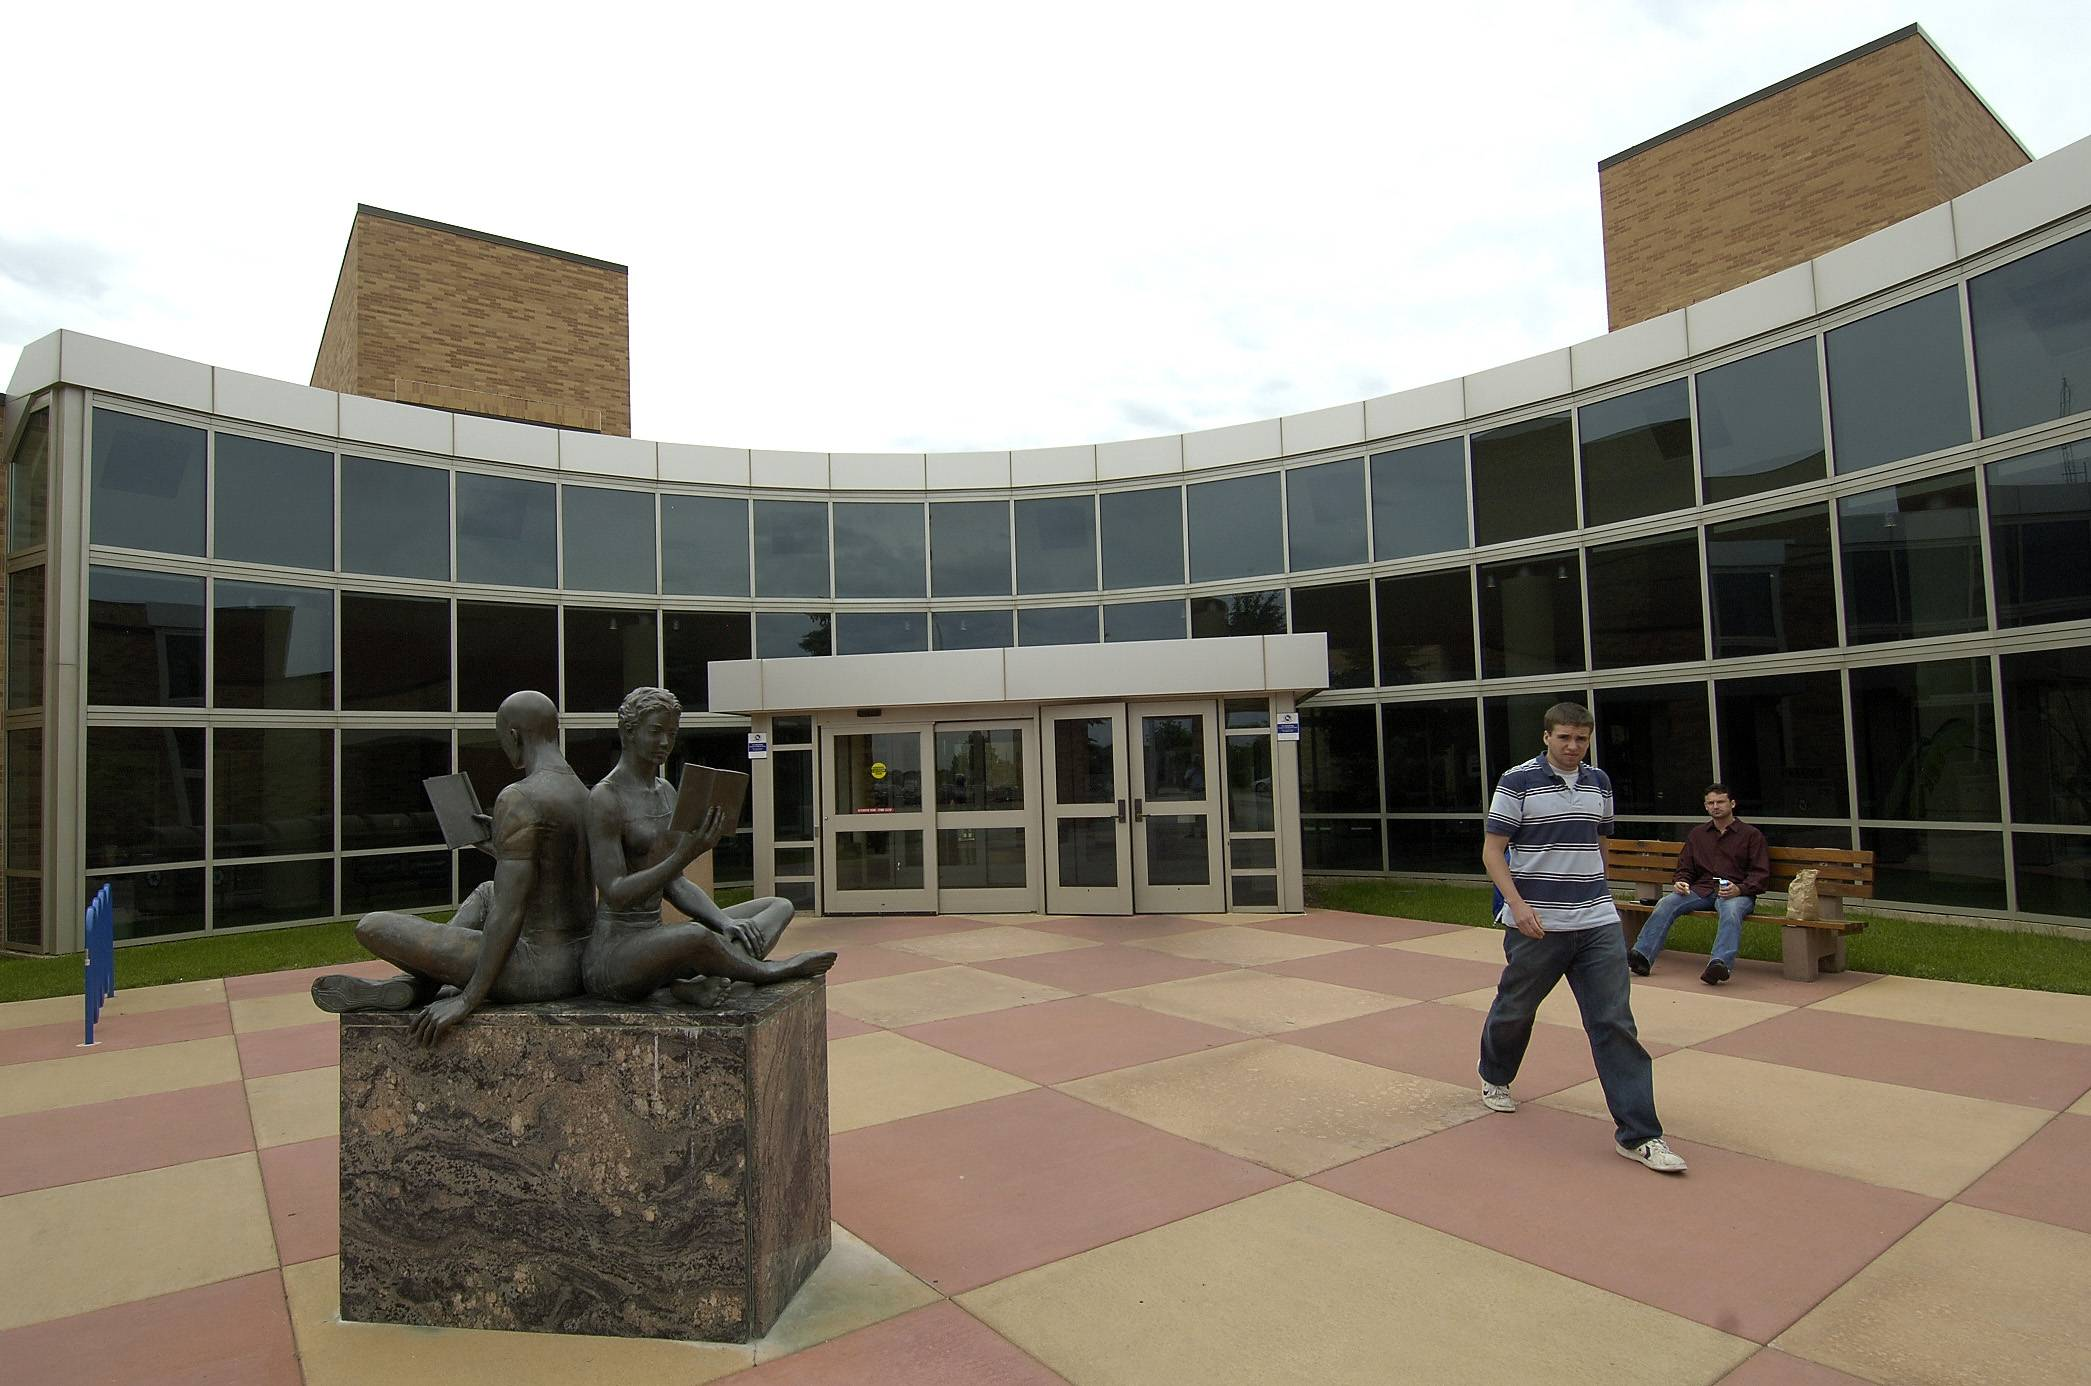 Students at College of Lake County will pay 2.2 percent more in tuition and fees in the next school year.